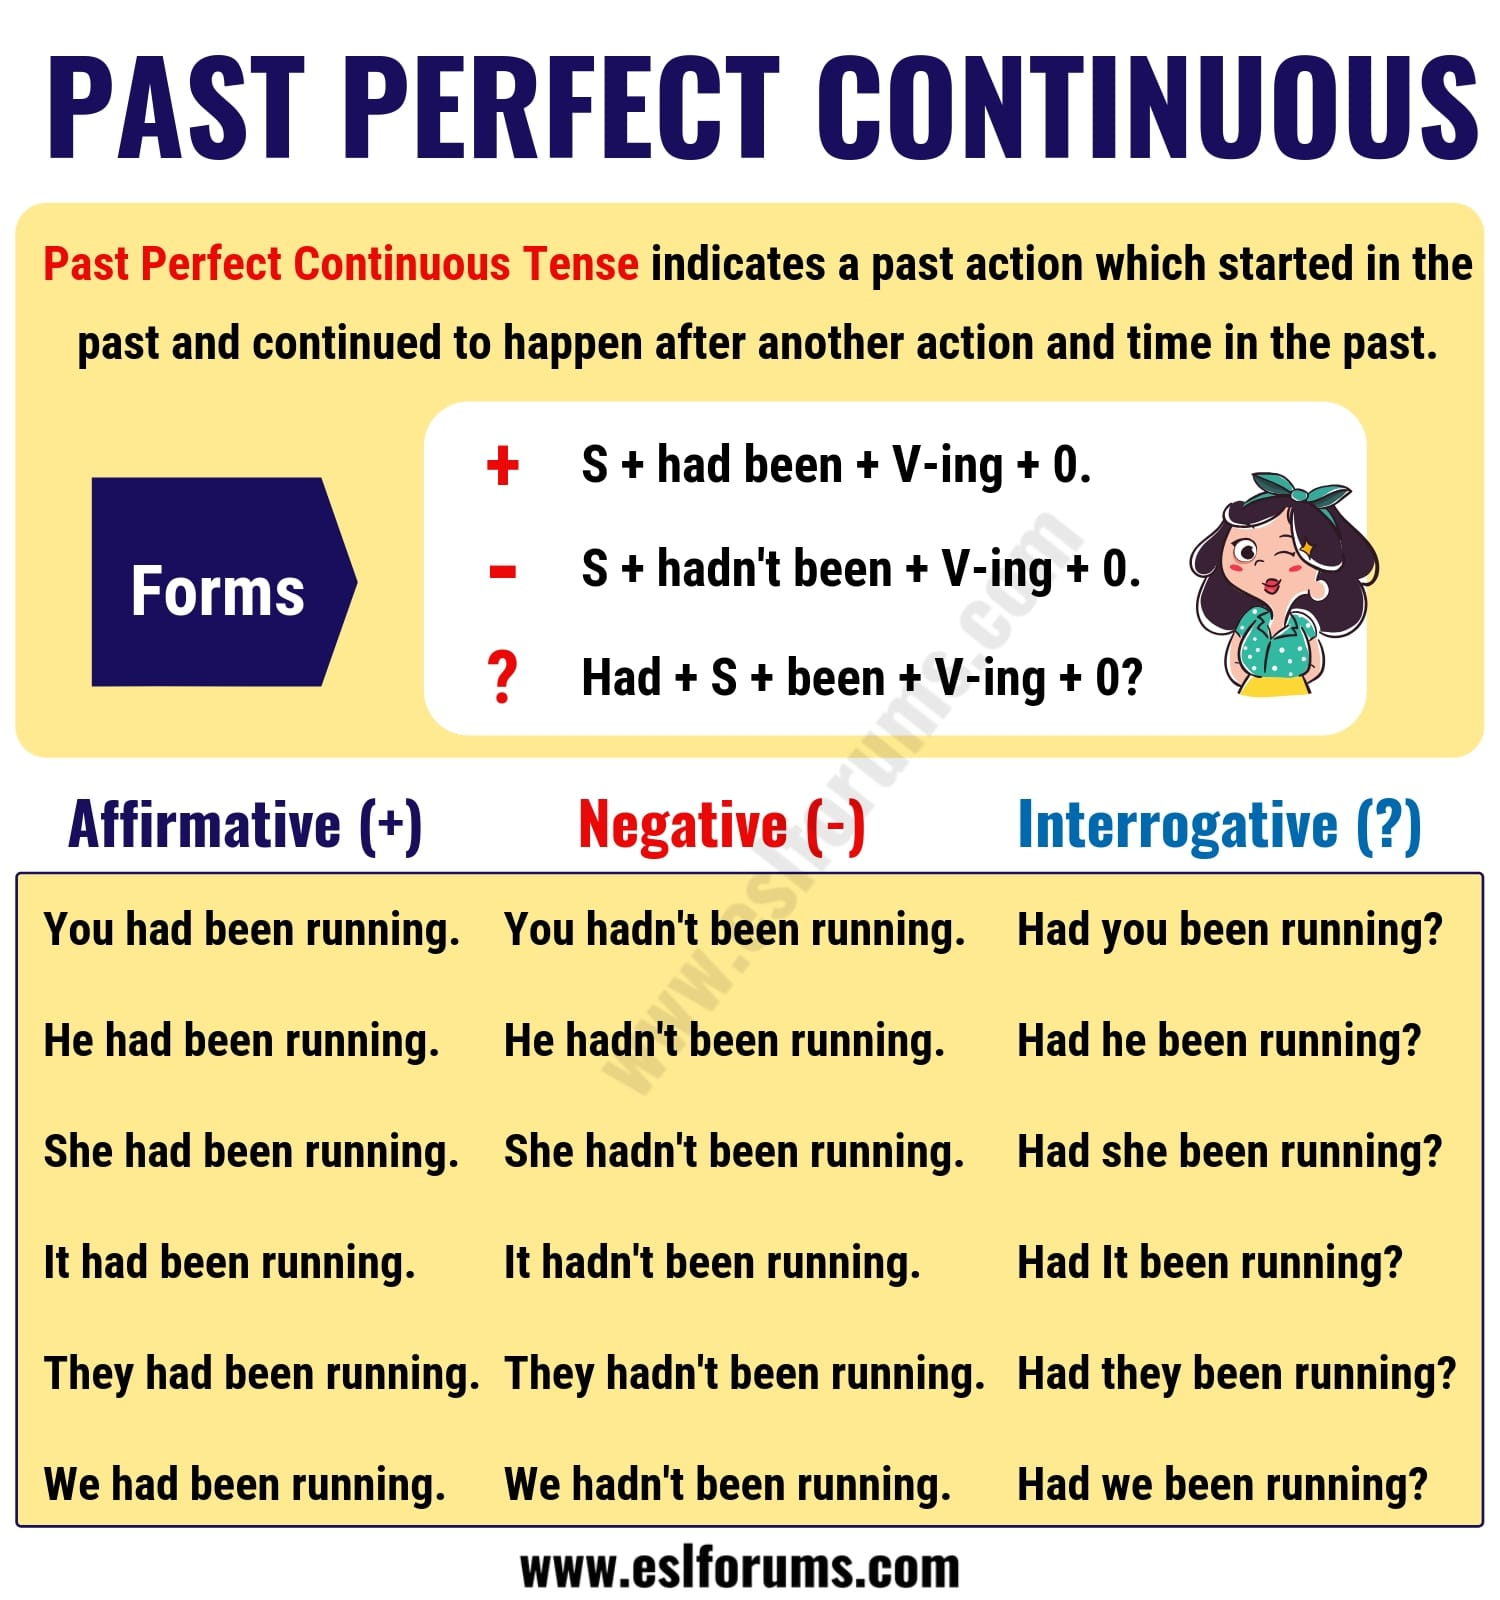 Past Perfect Continuous Tense: Usage and Useful Examples